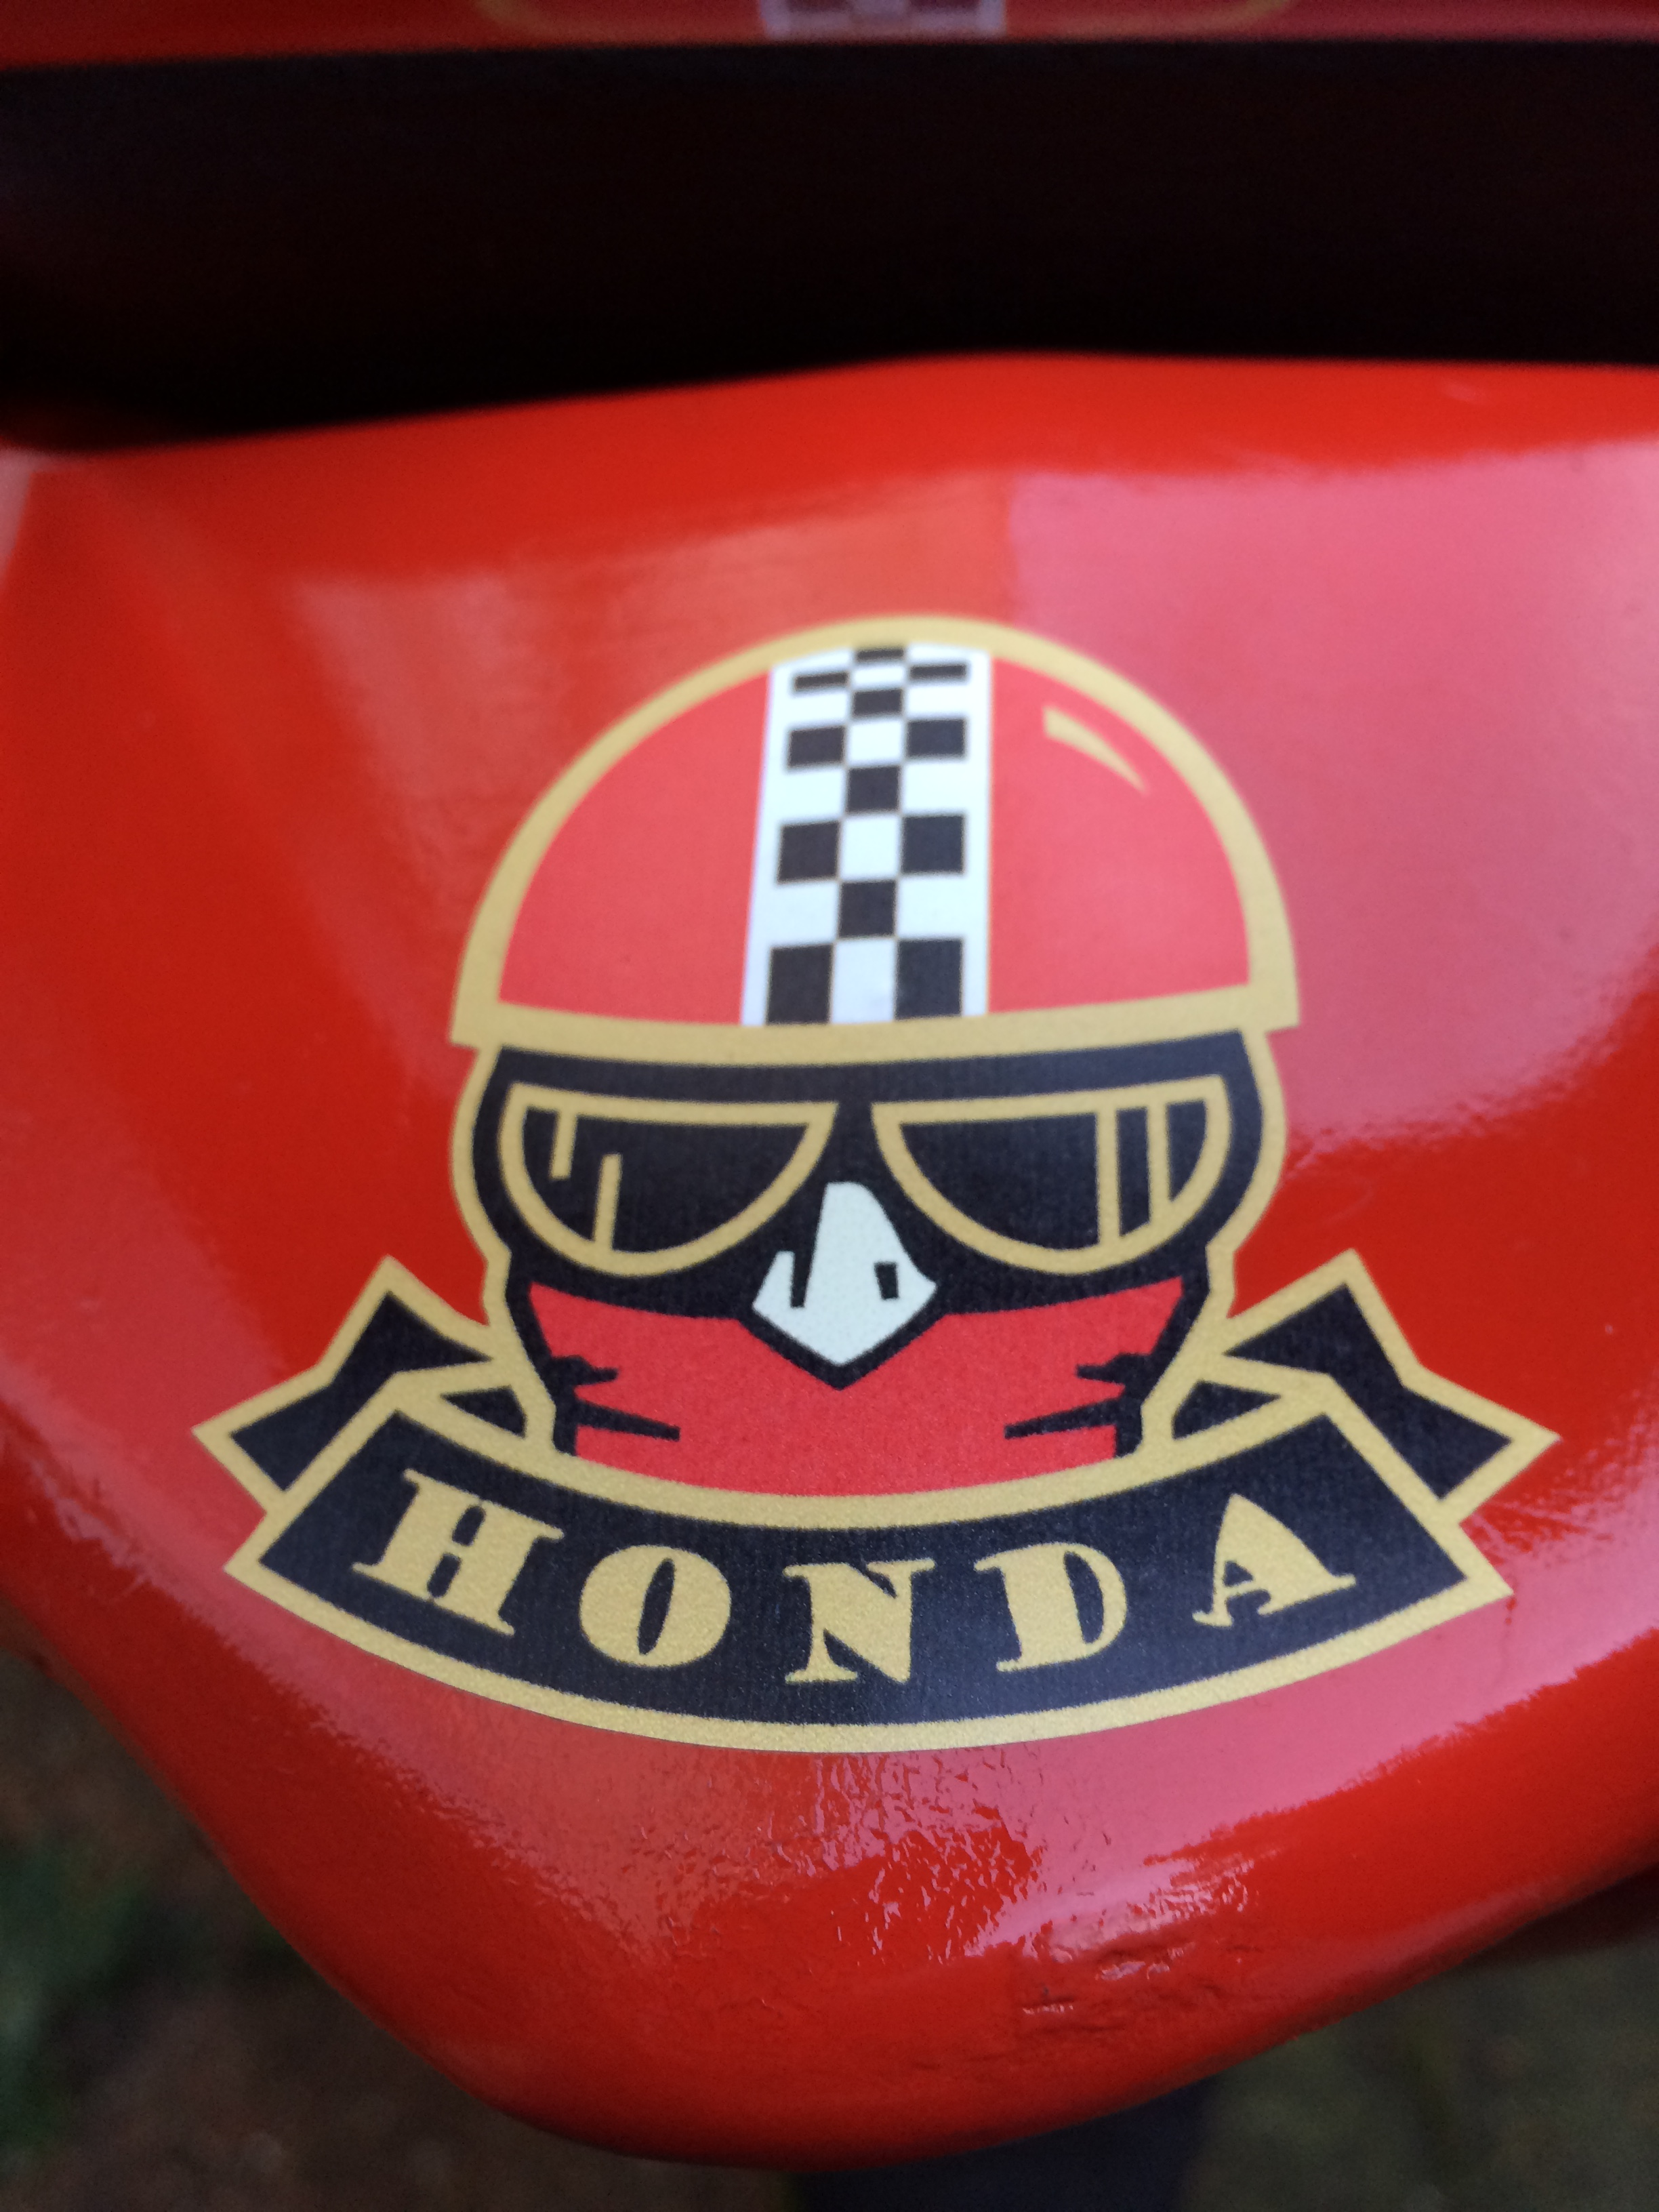 HondaCBF125 Red 2011 detail